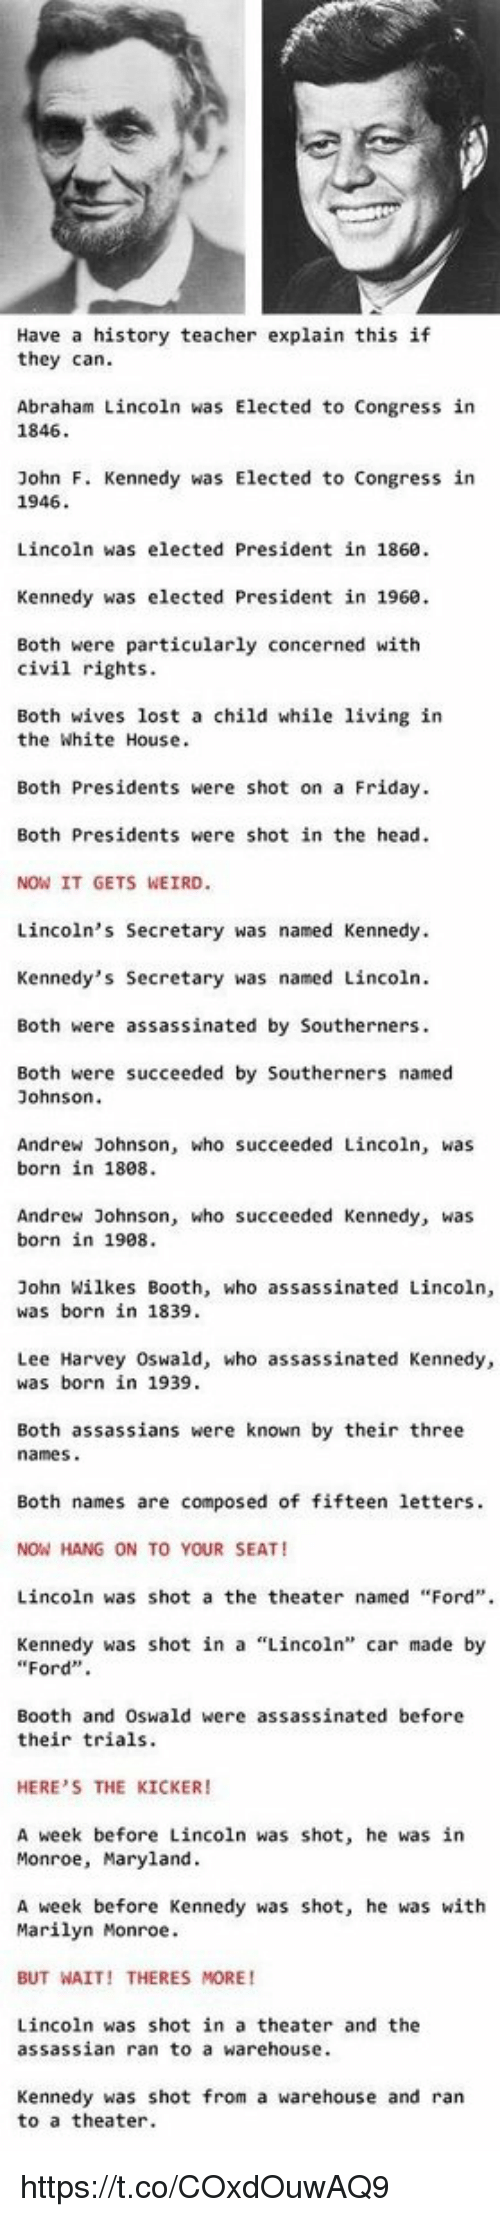 """Lee Harvey Oswald: Have a history teacher explain this if  they can.  Abraham Lincoln was Elected to Congress in  1846  John F. Kennedy was Elected to Congress in  1946.  Lincoln was elected President in 1860.  Kennedy was elected President in 1960.  Both were particularly concerned with  civil rights.  Both wives lost a child while living in  the White House  Both Presidents were shot on a Friday.  Both Presidents were shot in the head.  NOW IT GETS WEIRD.  Lincoln's Secretary was named Kennedy.  Kennedy's Secretary was named Lincoln.  Both were assassinated by Southerners.  Both were succeeded by Southerners named  Johnson  Andrew Johnson, who succeeded Lincoln  was  born in 1808.  Andrew Johnson, who succeeded Kennedy, was  born in 1908.  John Wilkes Booth, who assassinated Lincoln  was born in 1839.  Lee Harvey Oswald, who assassinated Kennedy,  was born in 1939.  Both assassians were known by their three  names  Both names are composed of fifteen letters.  NOW HANG ON TO YOUR SEAT!  Lincoln was shot a the theater named """"Ford"""".  Kennedy was shot in a Lincoln'  car made by  Ford  Booth and Oswald were assassinated before  their trials.  HERE'S THE KICKER!  A week before Lincoln was shot, he was in  Monroe, Maryland.  A week before Kennedy was shot, he was with  Marilyn Monroe.  BUT WAIT! THERES MORE!  Lincoln was shot in a theater and the  assassian ran to a warehouse.  Kennedy was shot from a warehouse and ran  to a theater. https://t.co/COxdOuwAQ9"""